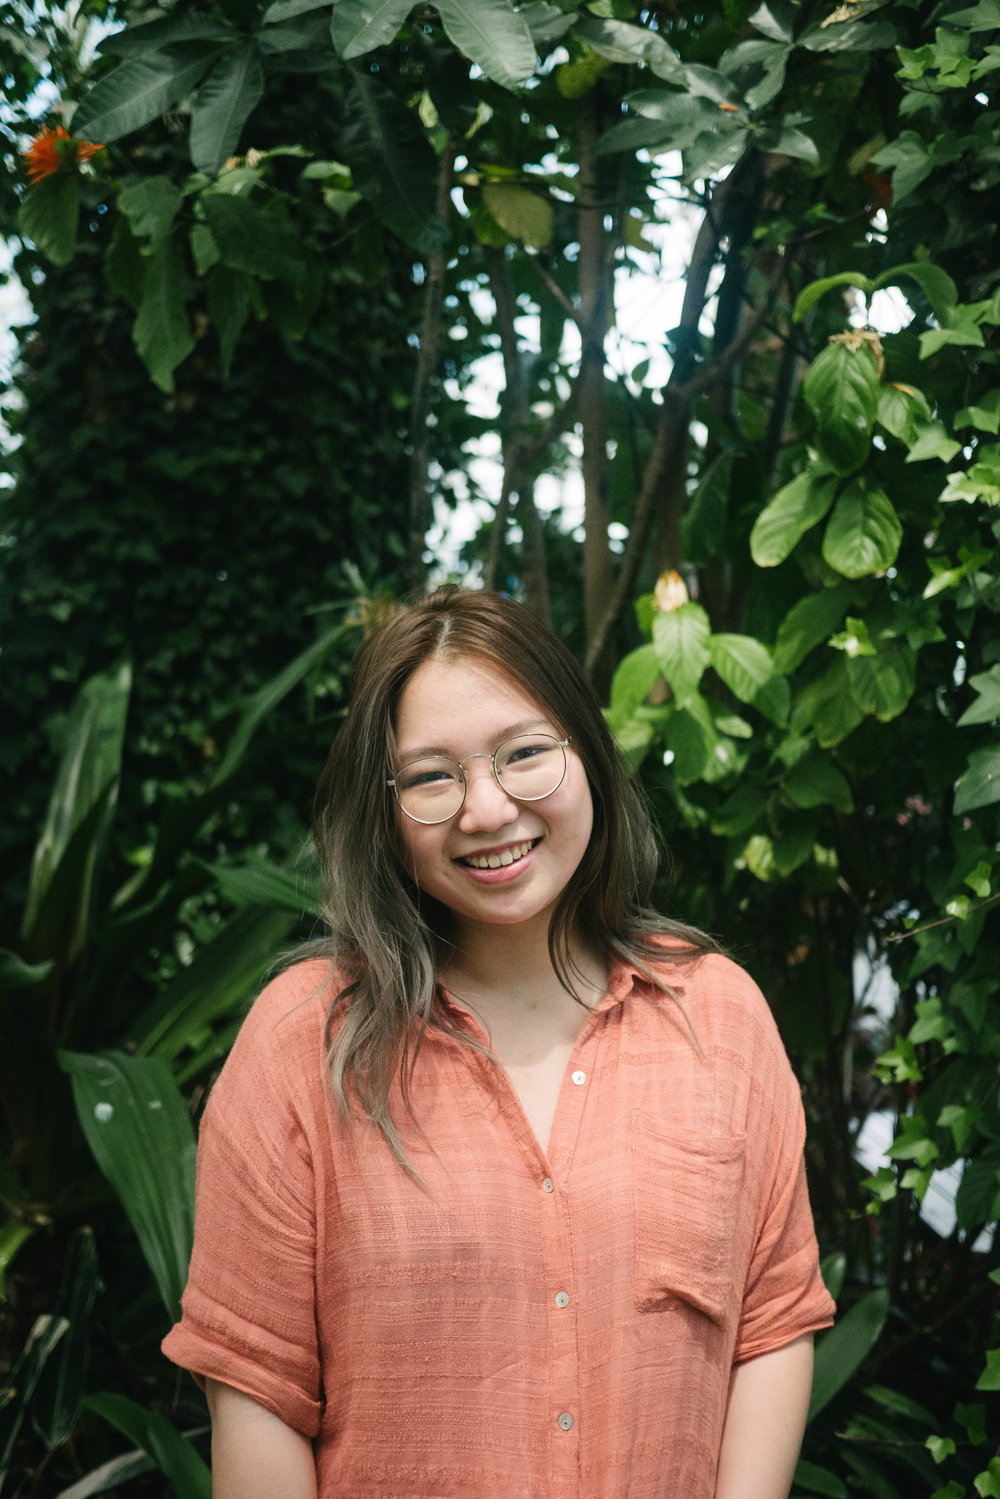 hello! - I'm WinonaBorn and raised in Surabaya, Indonesia; currently resides in Brooklyn, New YorkRecent graduate from DePaul University,double majoring in Media Communication & Media and Cinema StudiesPassionate about filmmaking, storytelling, and pop culture!Let's collaborate and create some videos together!